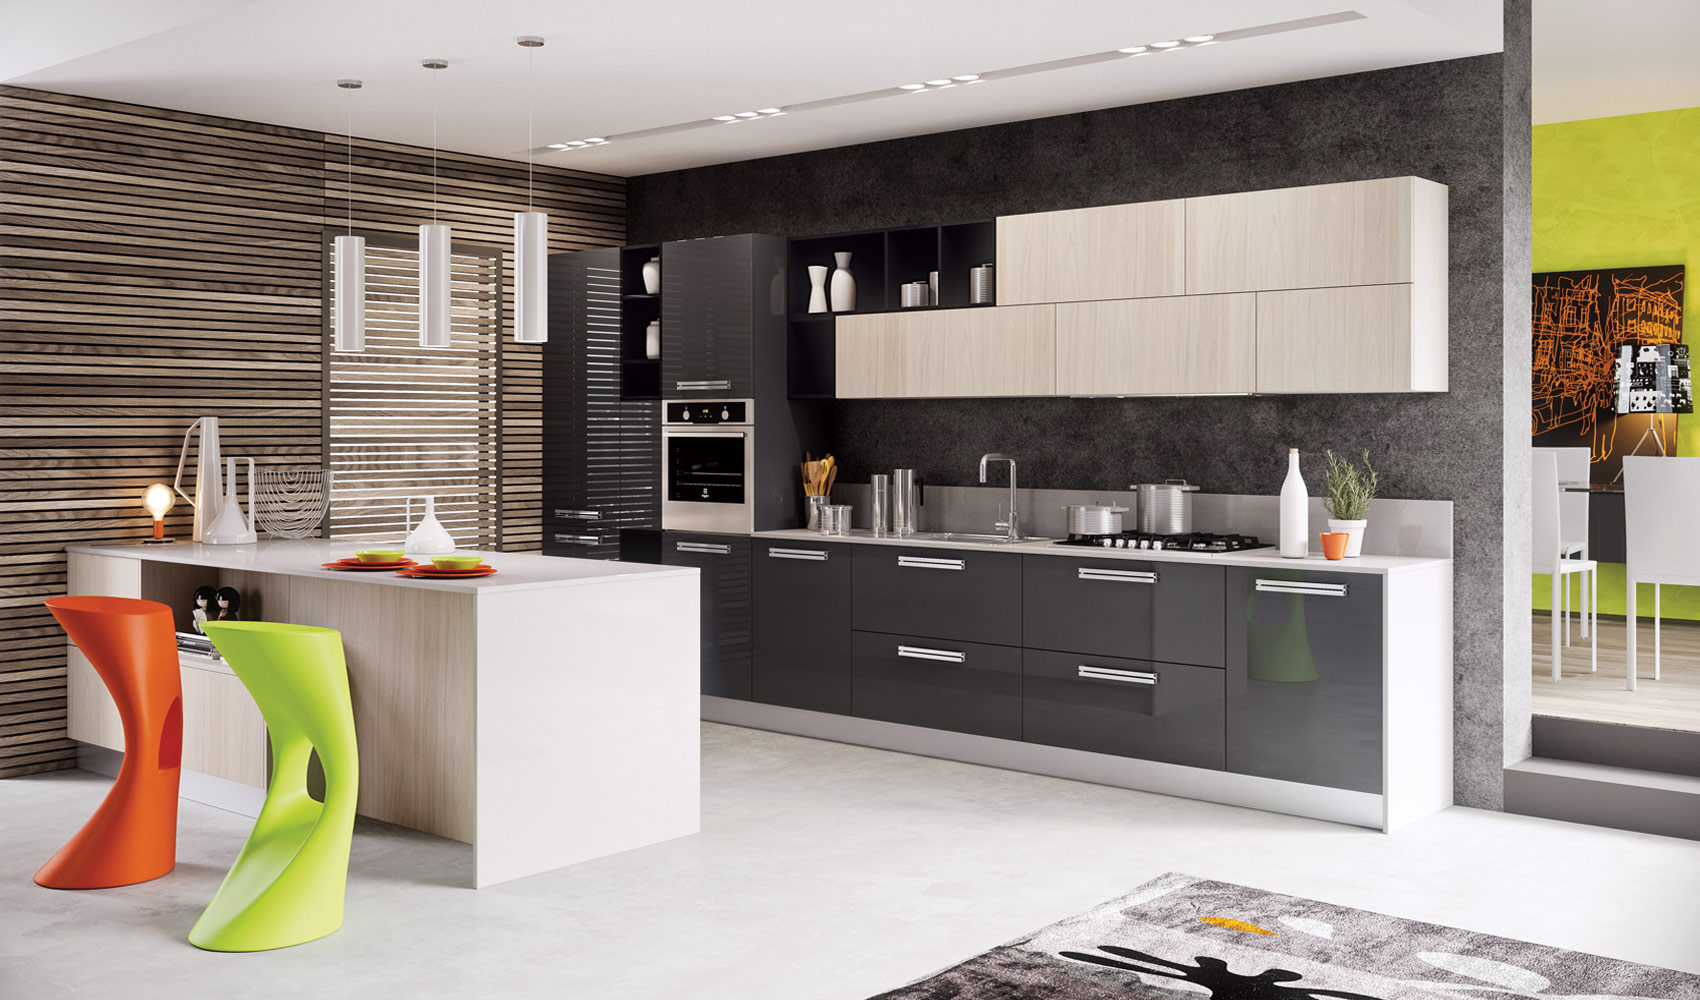 Contemporary kitchen design interior design ideas for Modern kitchen interior design ideas